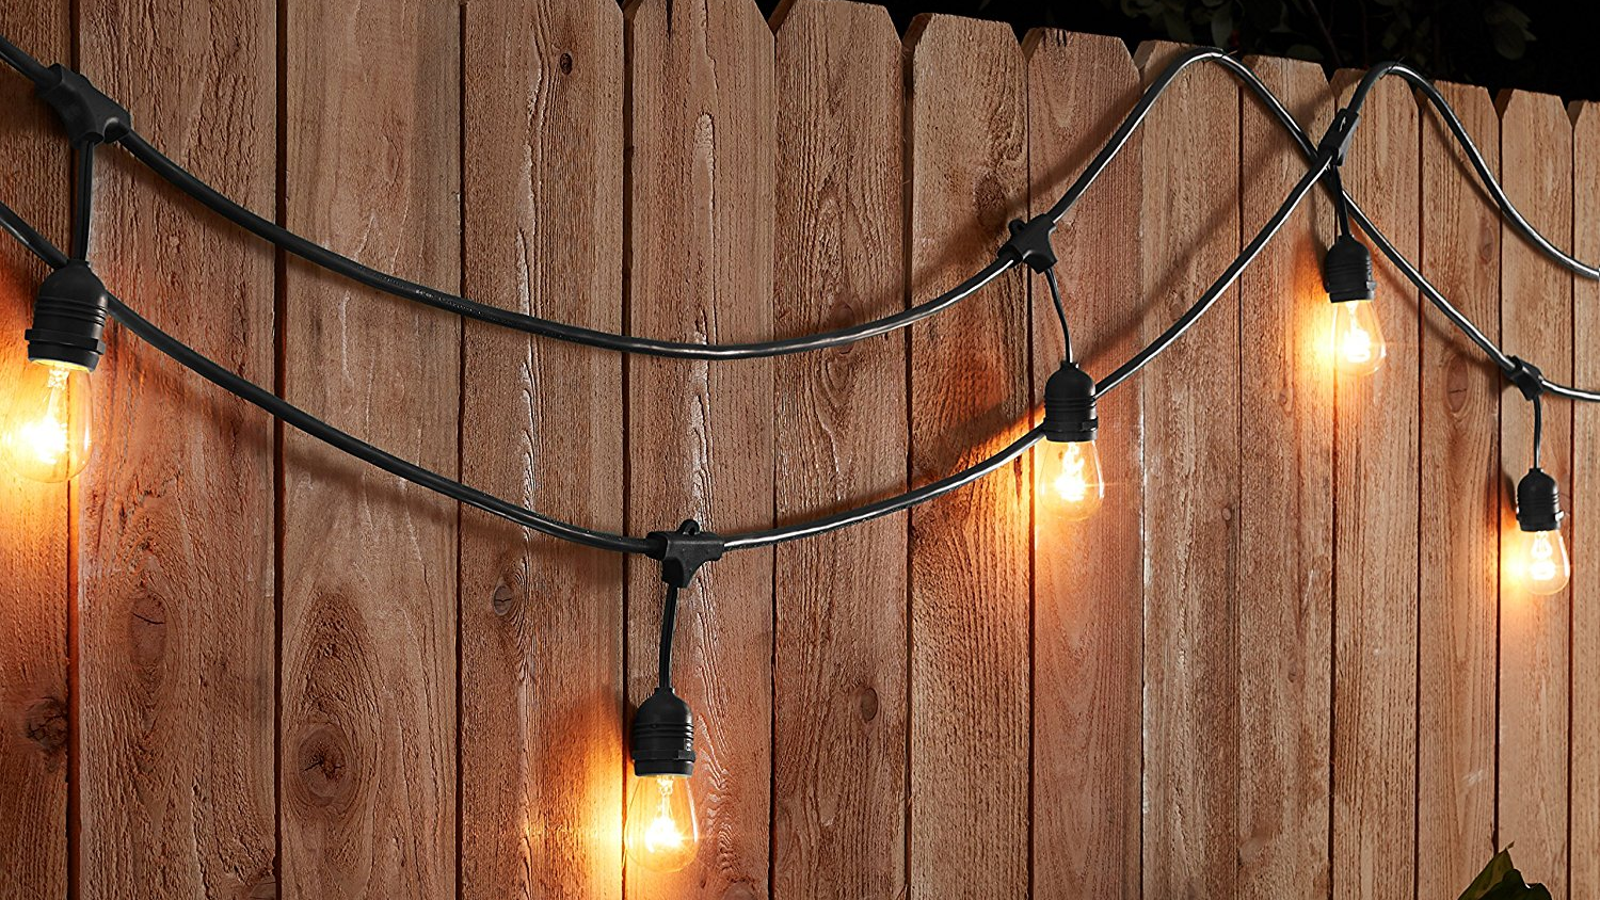 Hang up 49 feet of weatherproof string lights for 42 - How to hang up string lights ...